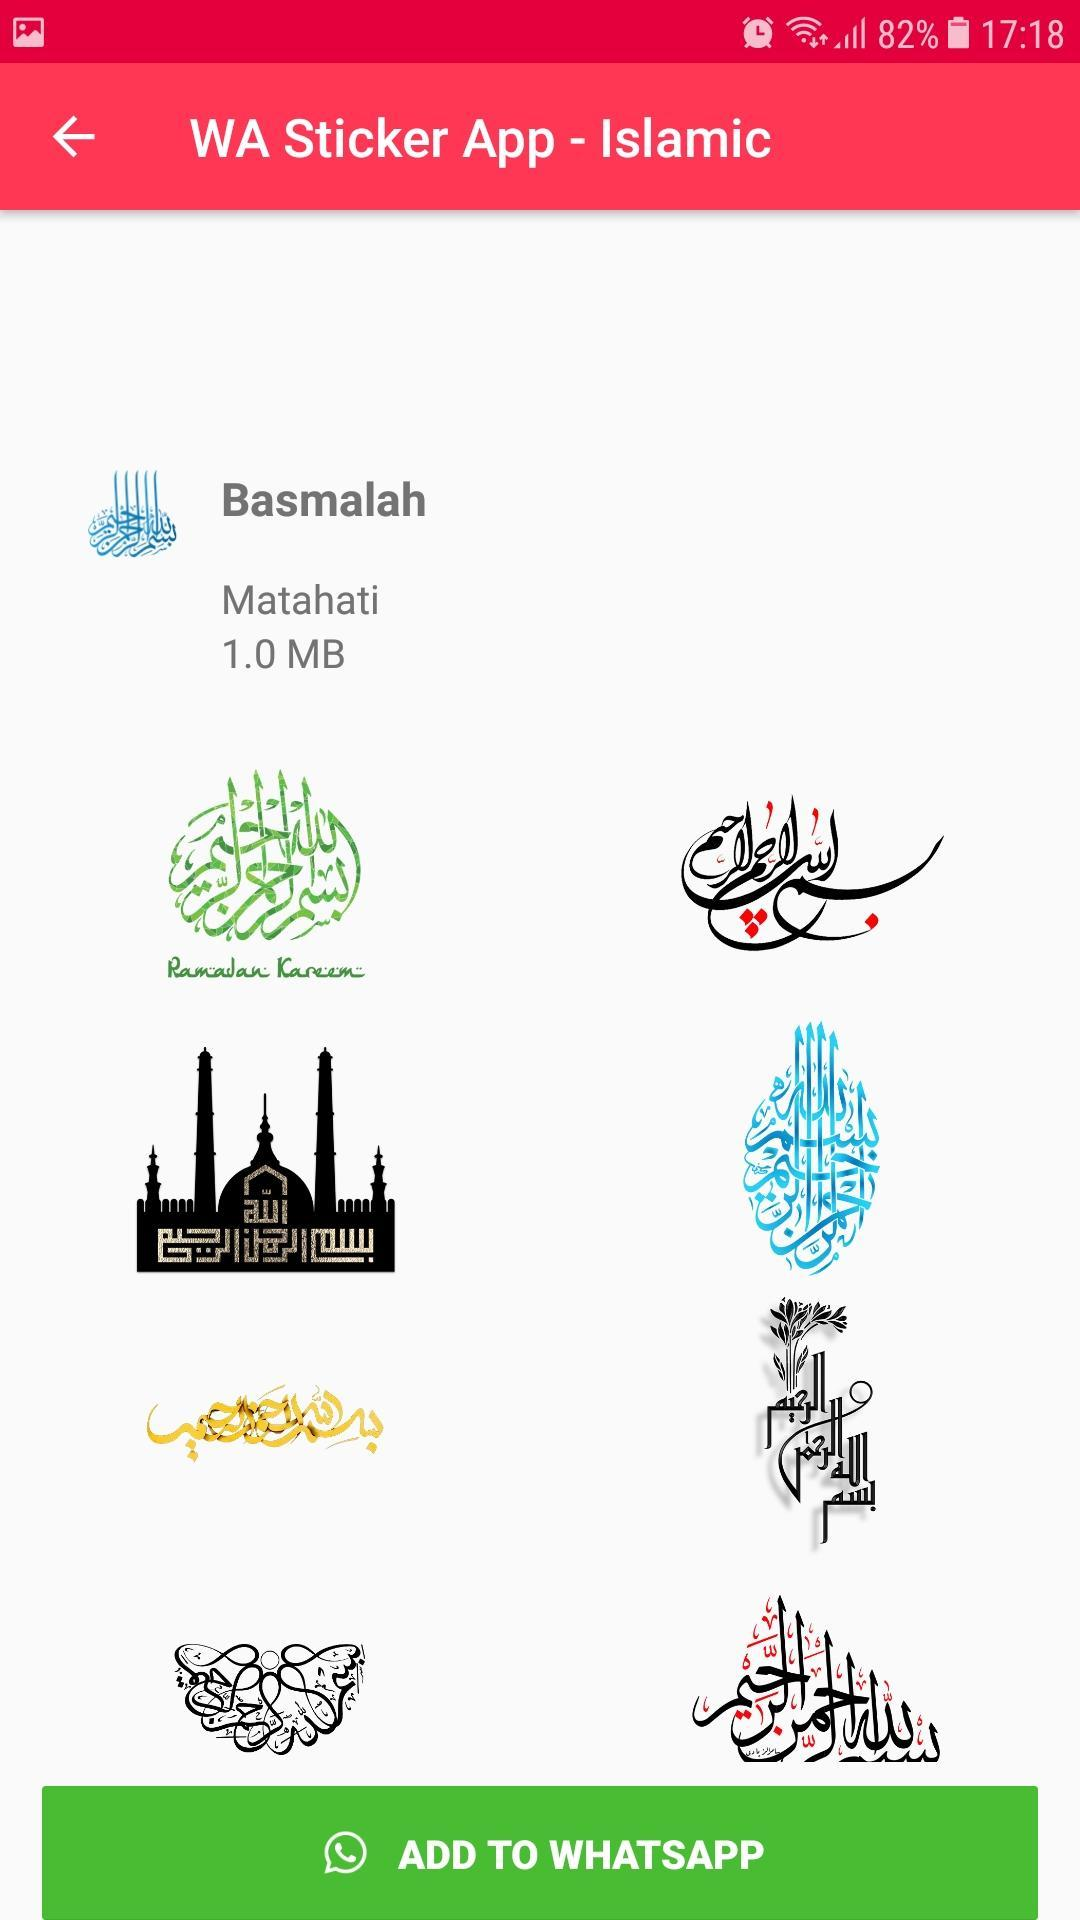 Islamic Sticker Whatsapp For Wastickerapps For Android Apk Download